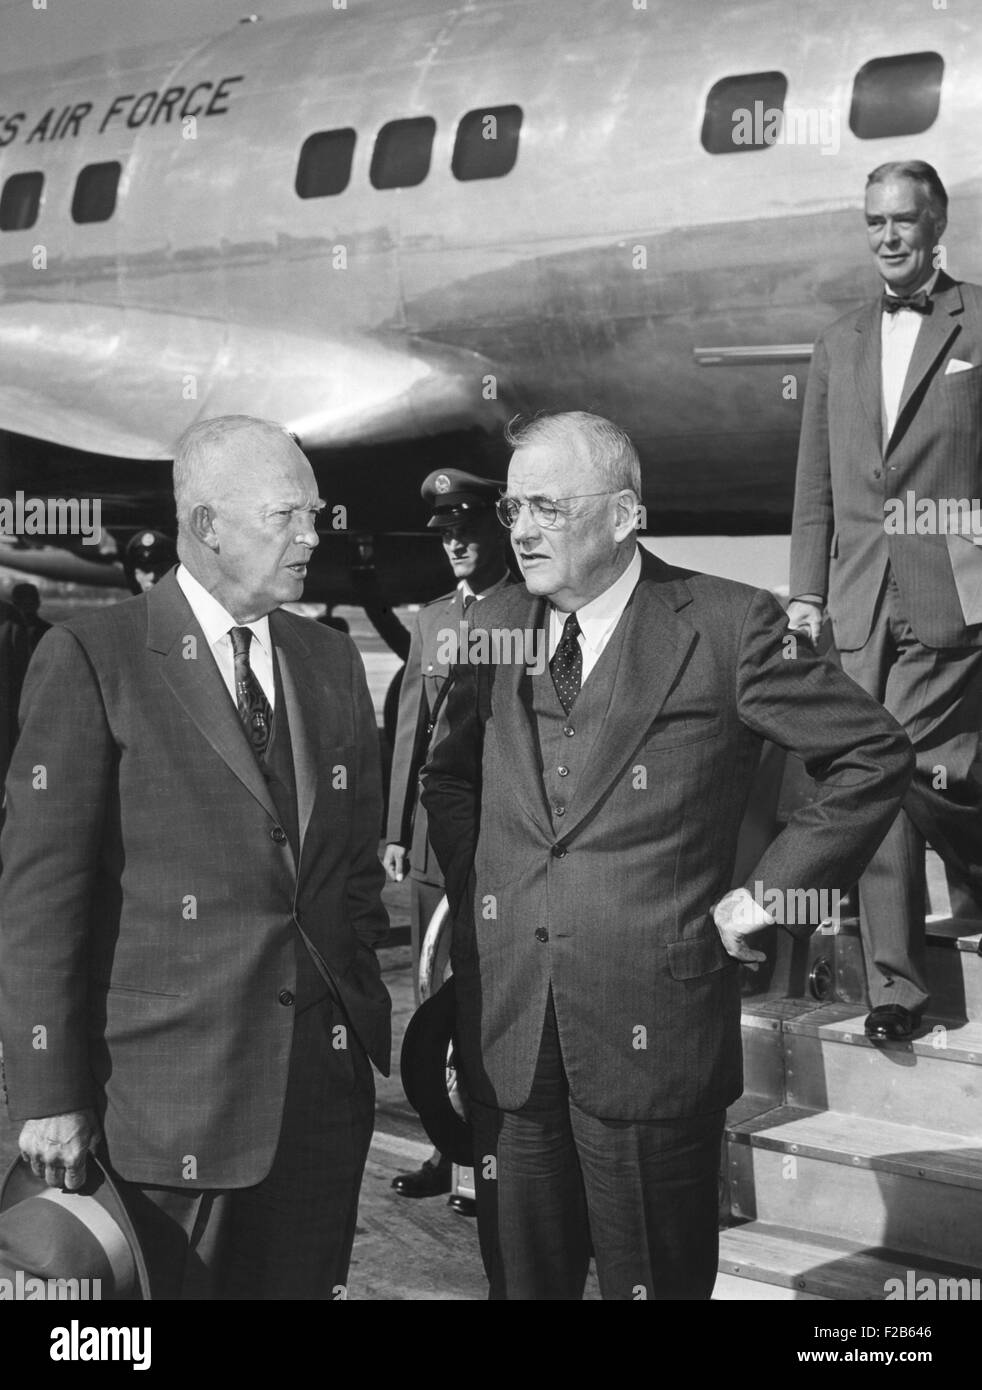 President Eisenhower was met by Sec. of State John Foster Dulles at Washington National Airport. Eisenhower was - Stock Image